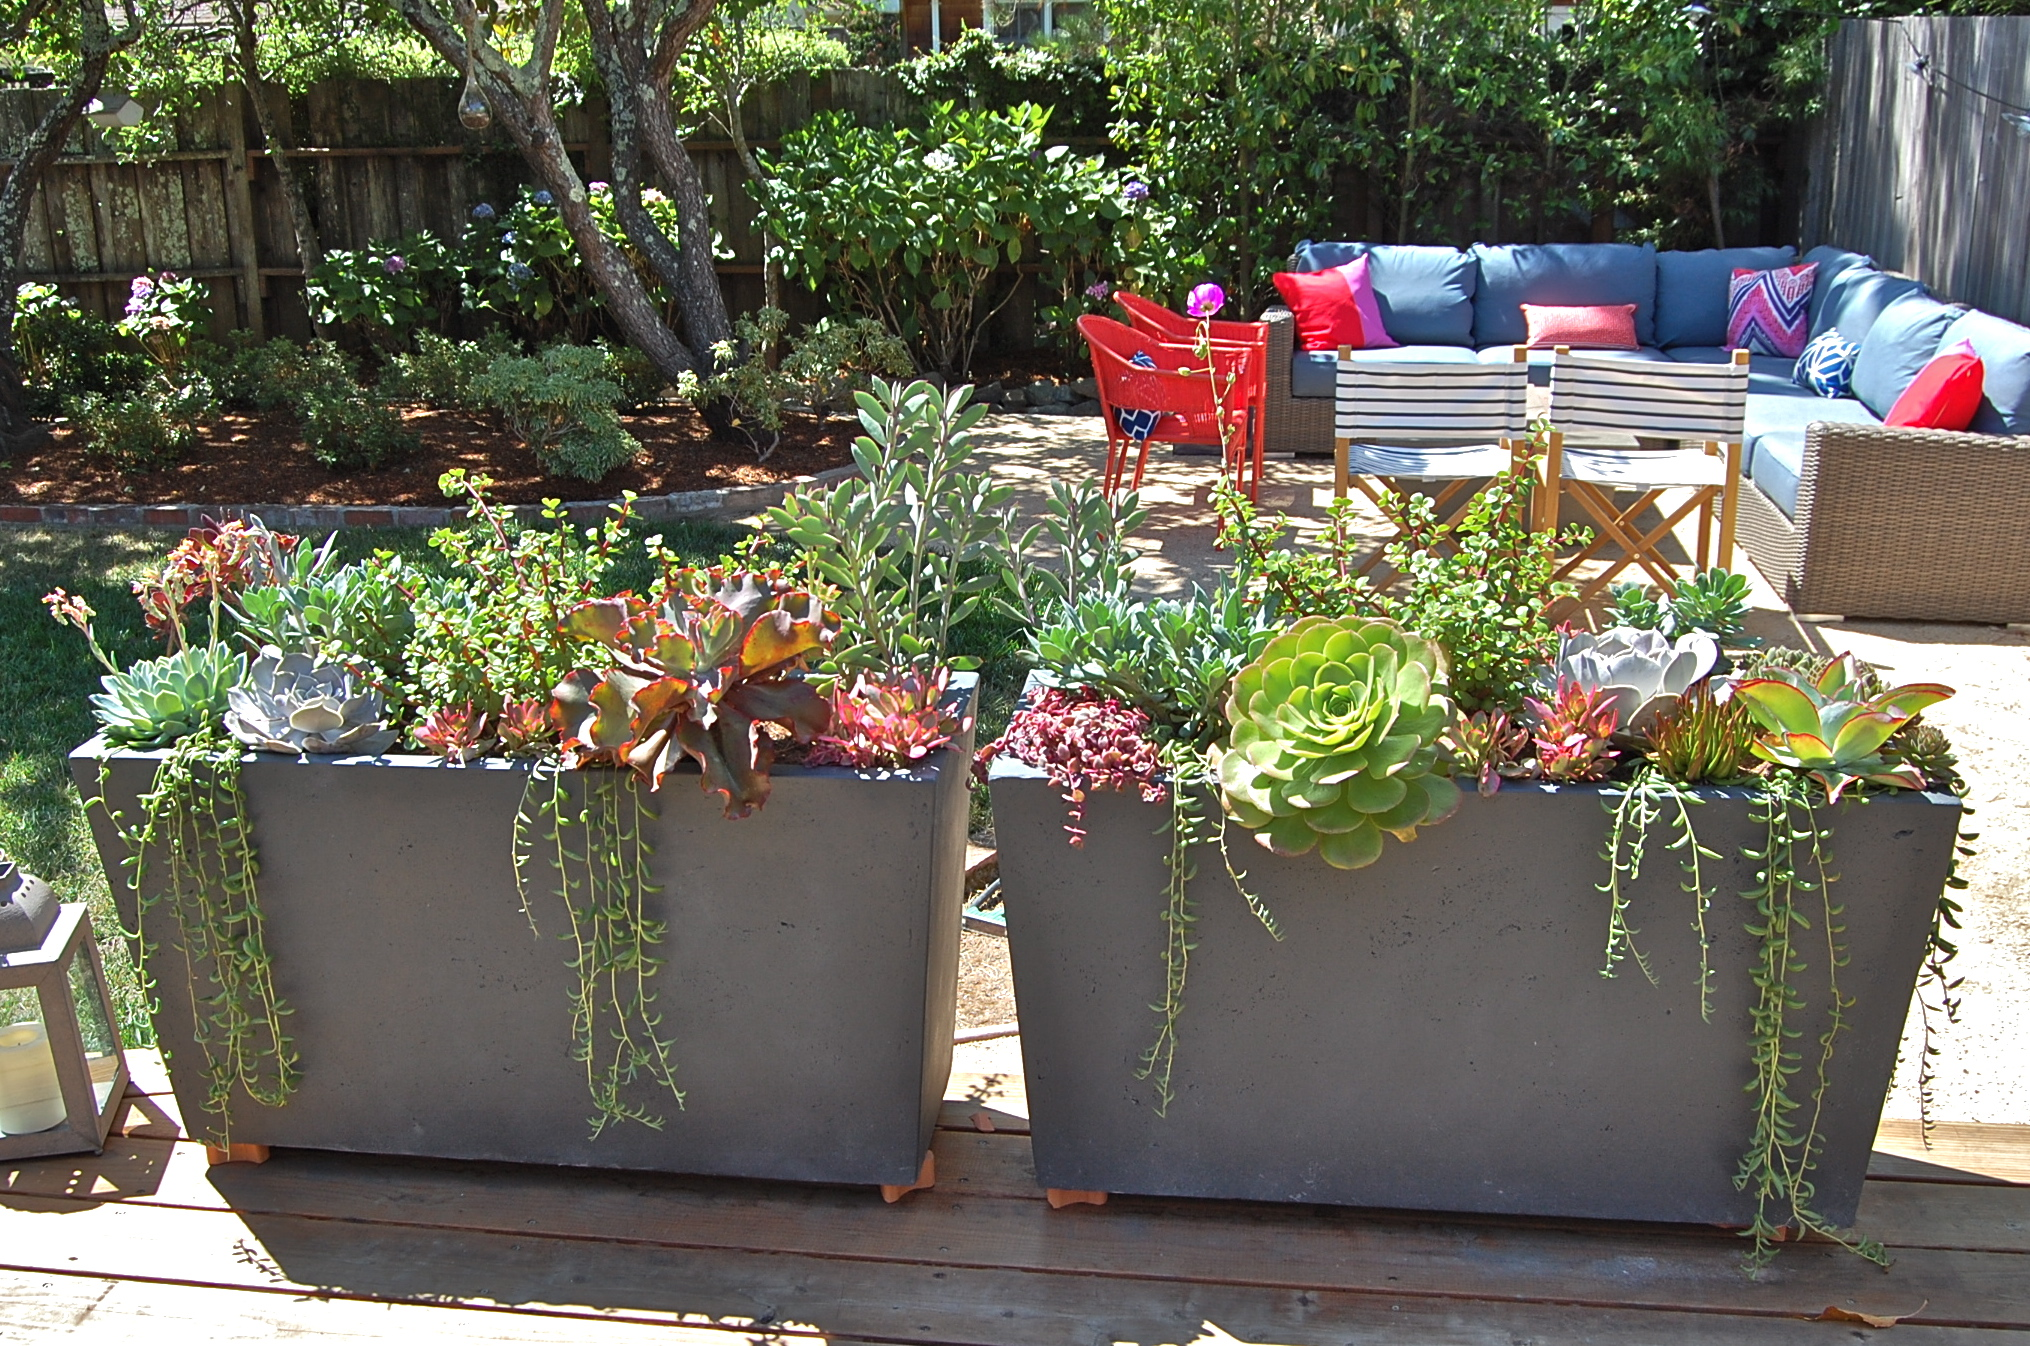 CUSTOM OUTDOOR PLANTERS PROJECT IN COLLABORATION WITH  YELLOW HOUSE INTERIOR DESIGN IN LARKSPUR, CA